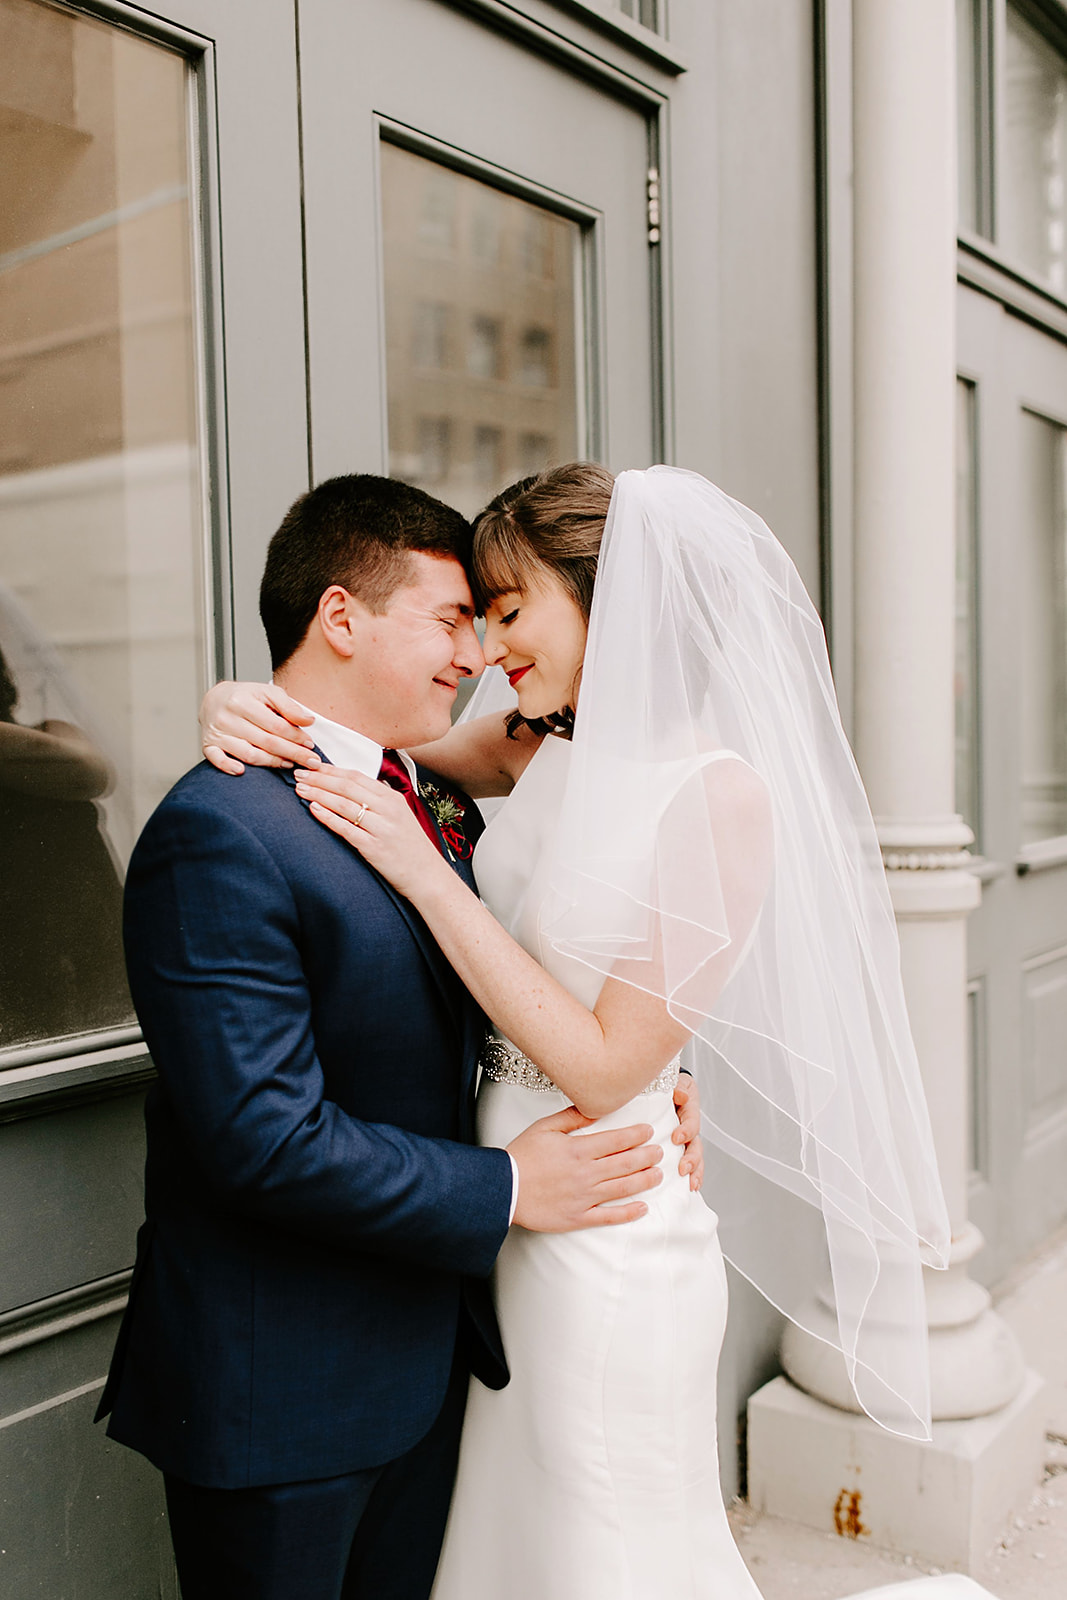 Emily and Davis_ Wedding at Vision Loft Indy in Indianapolis Indiana by Emily Elyse Wehner Photogrpahy LLC-159.jpg